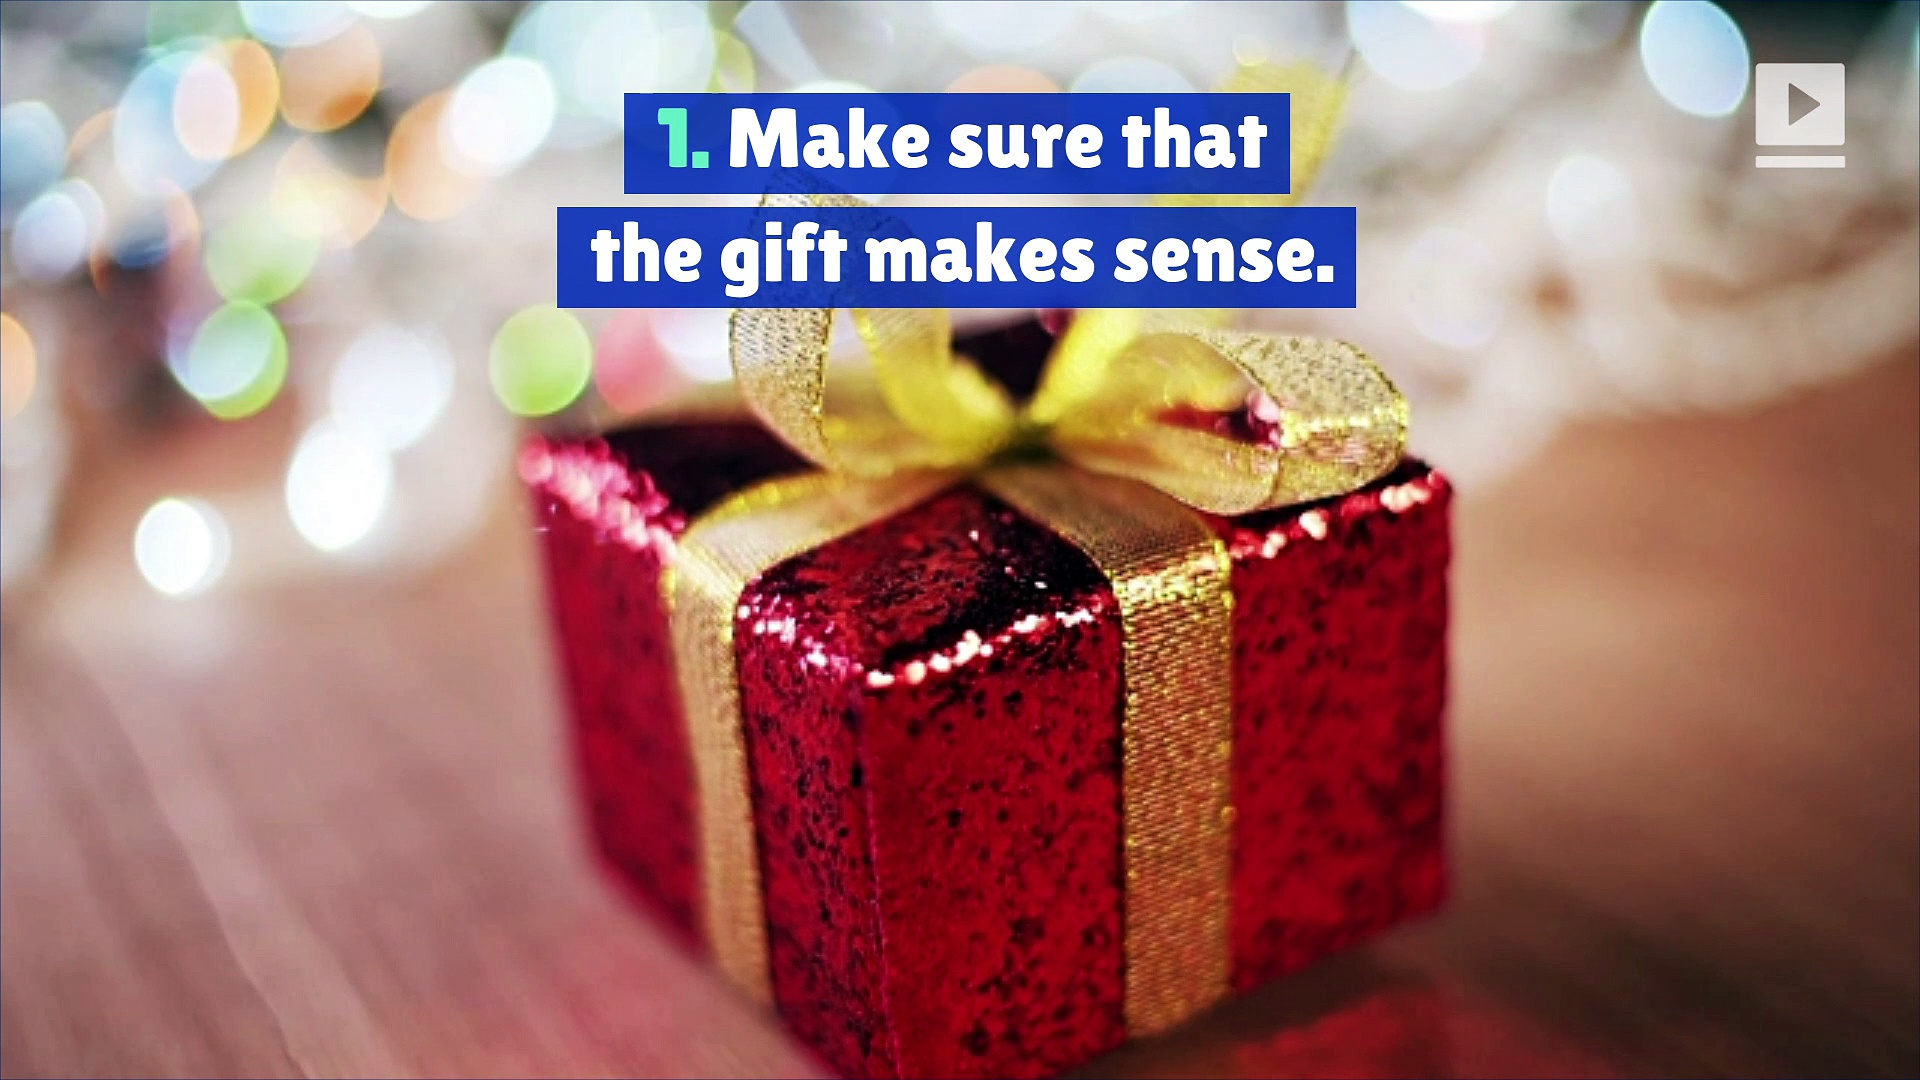 5 Simple Rules for Re-Gifting (National Re-Gifting Day)